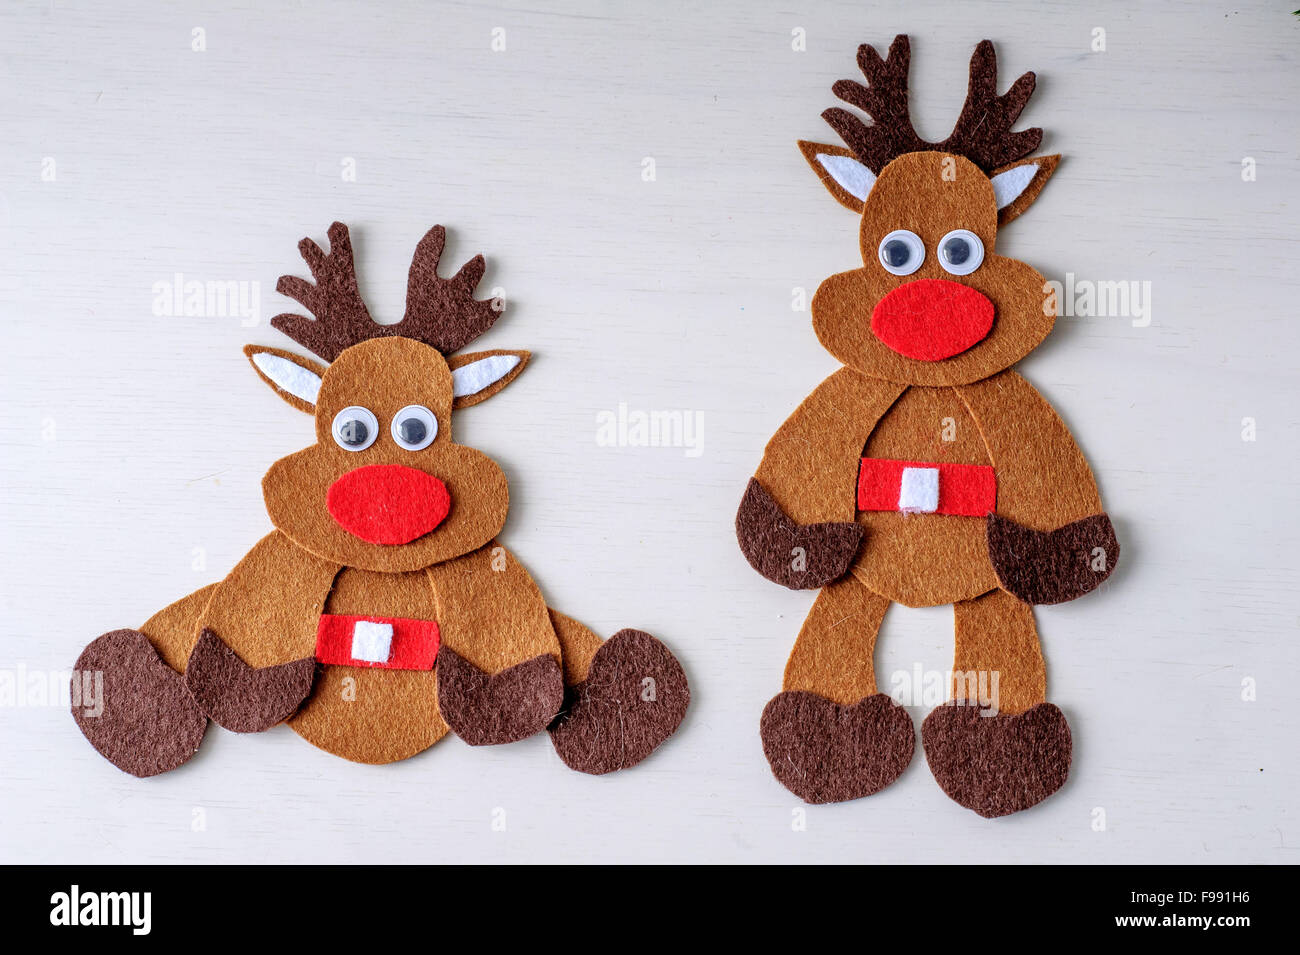 Rudolph Christmas Immagini  Rudolph Christmas Fotos Stock  Alamy